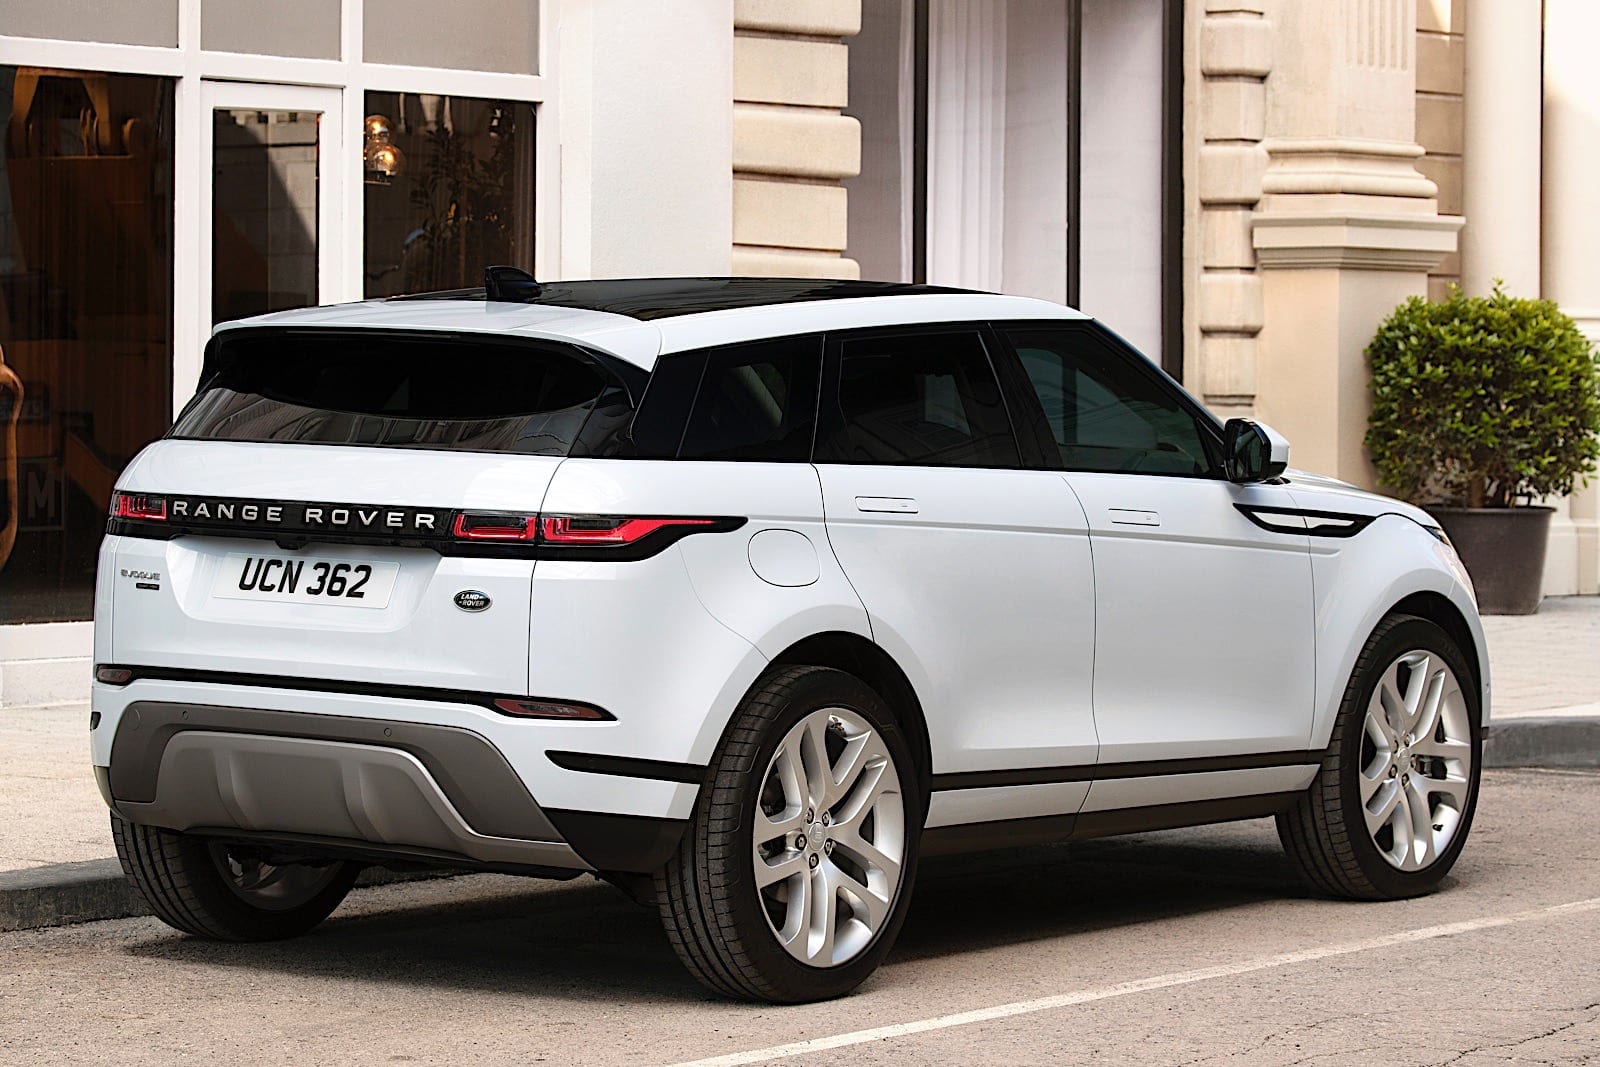 Range Rover S 2020 Evoque Blends Style With Sustainability